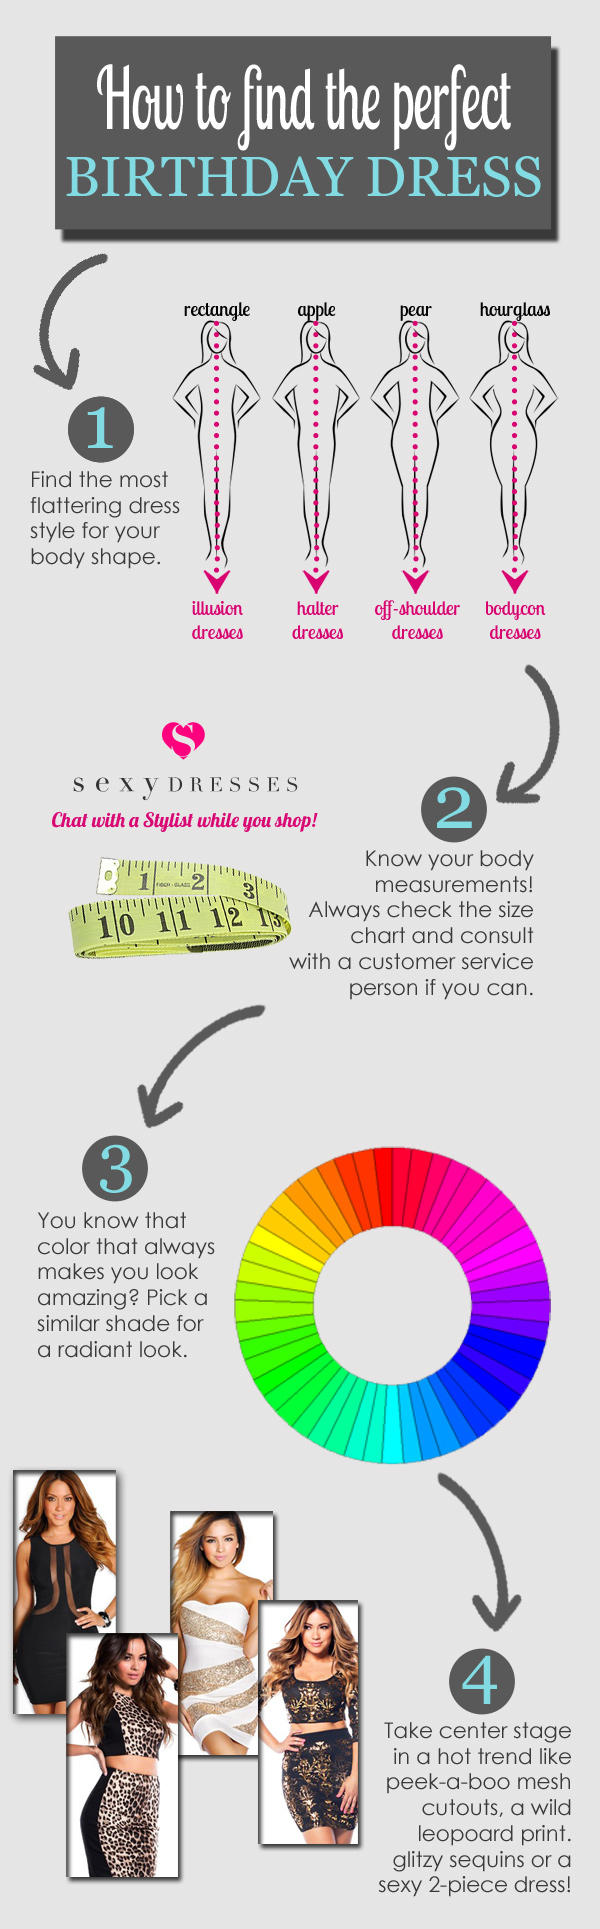 How to Find Your Perfect Birthday Dress